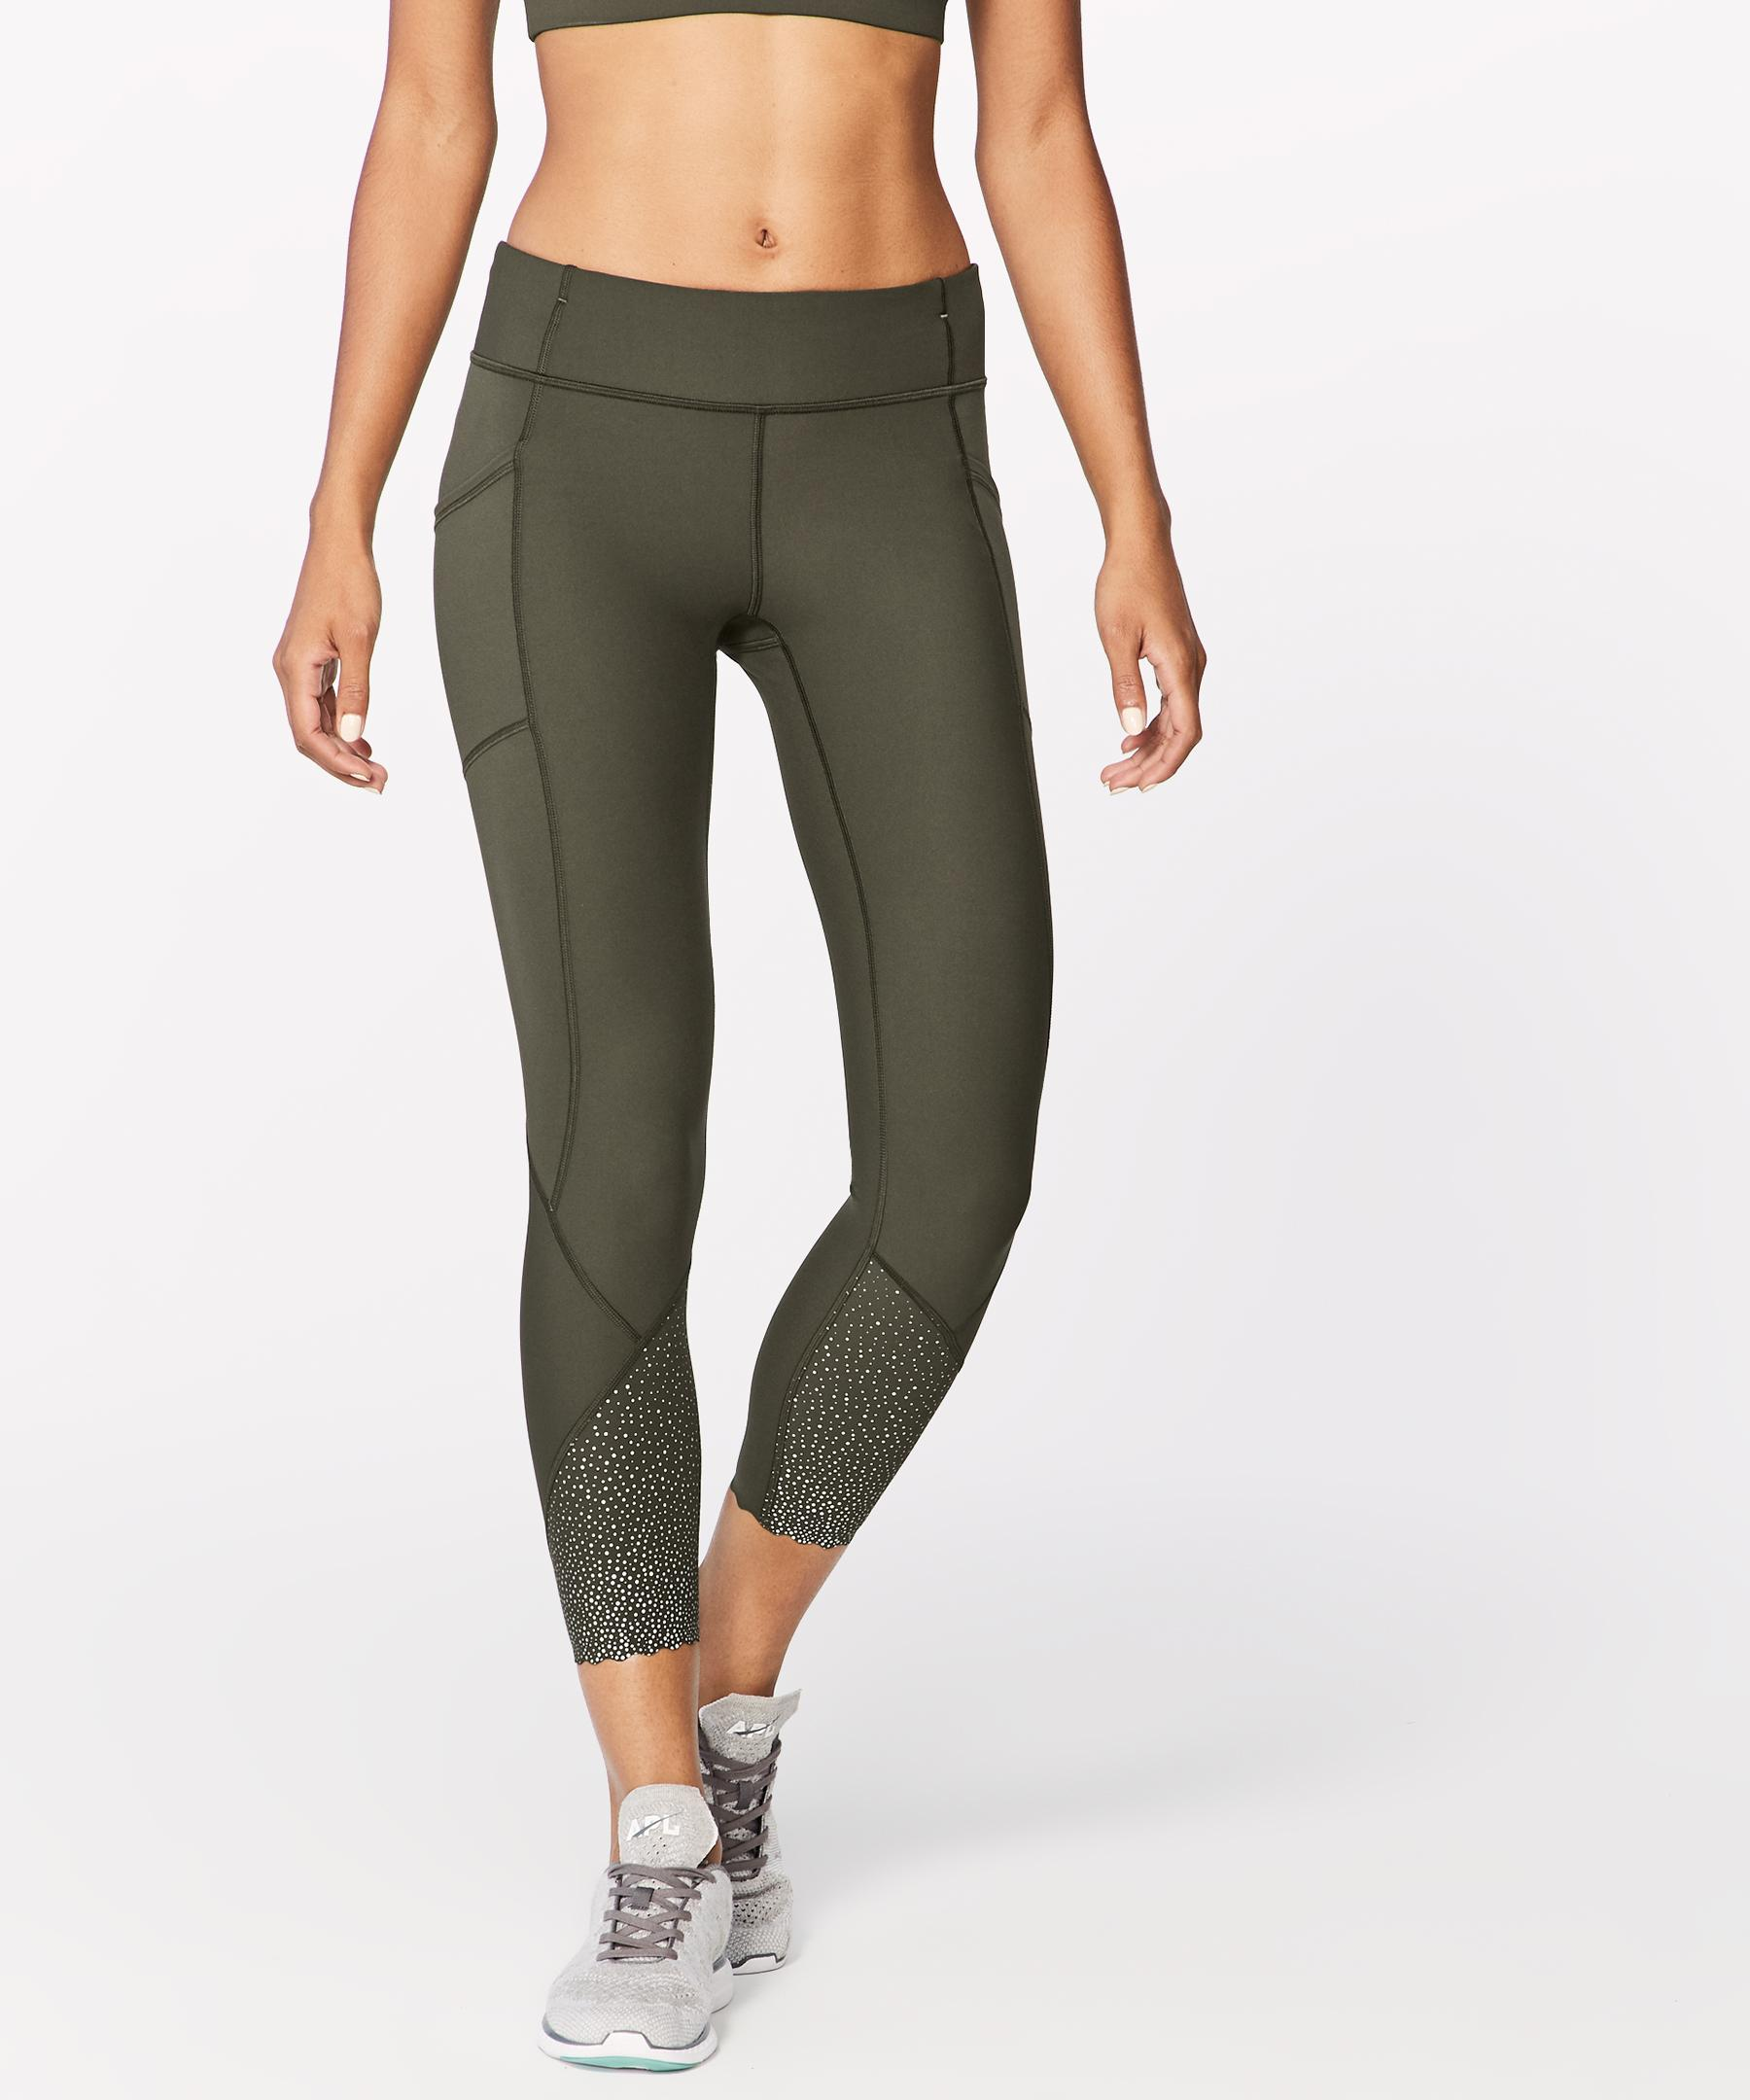 248fa819c lululemon athletica Tight Stuff Tight Ii  online Only 25